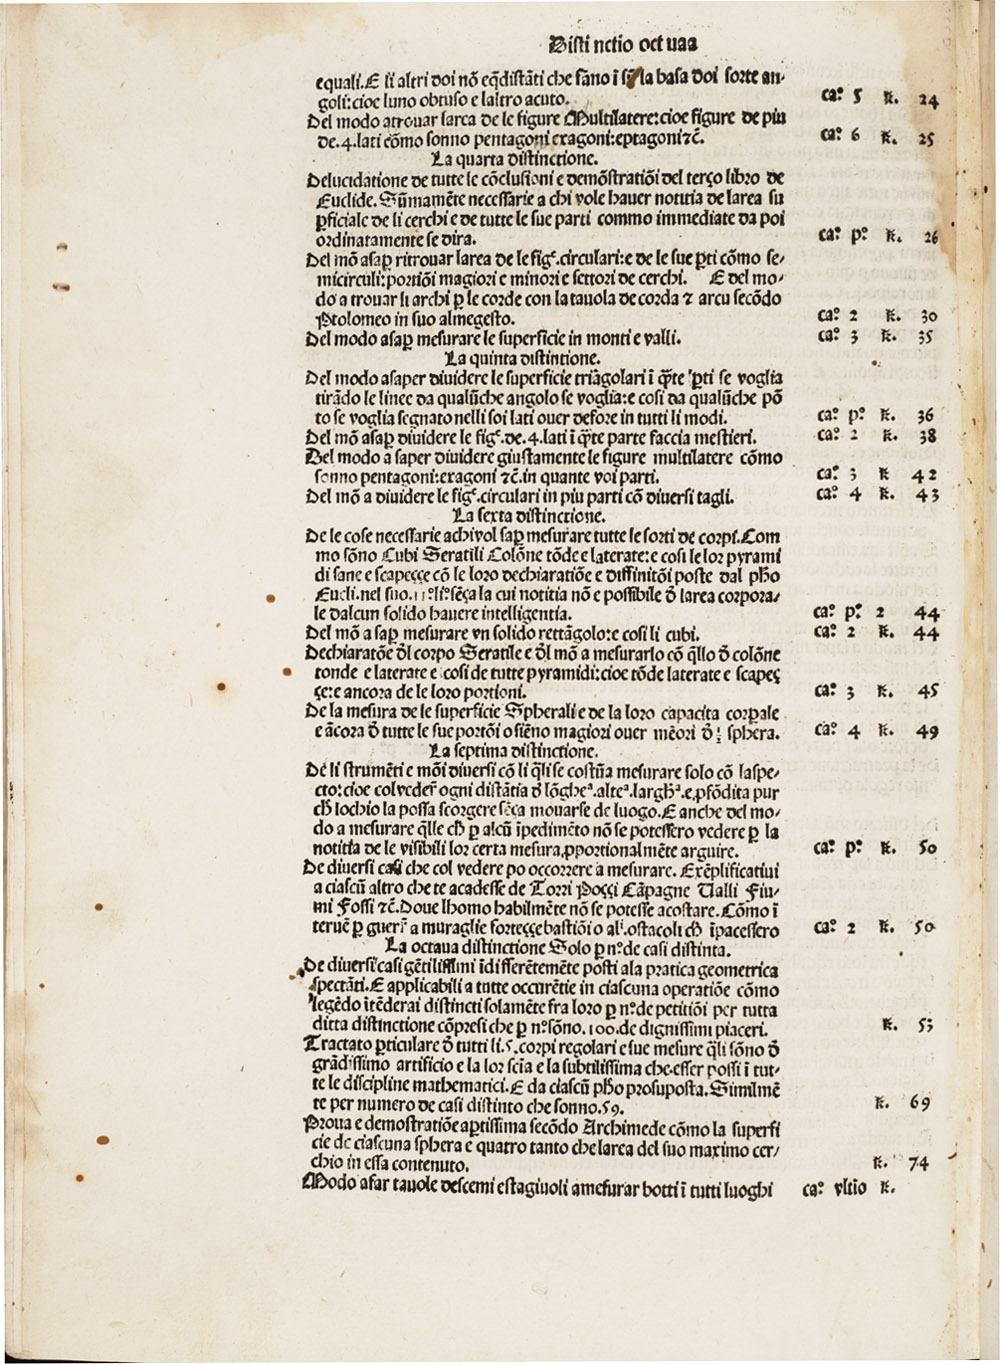 f75 - verso,  Image number:sil7-108-58a